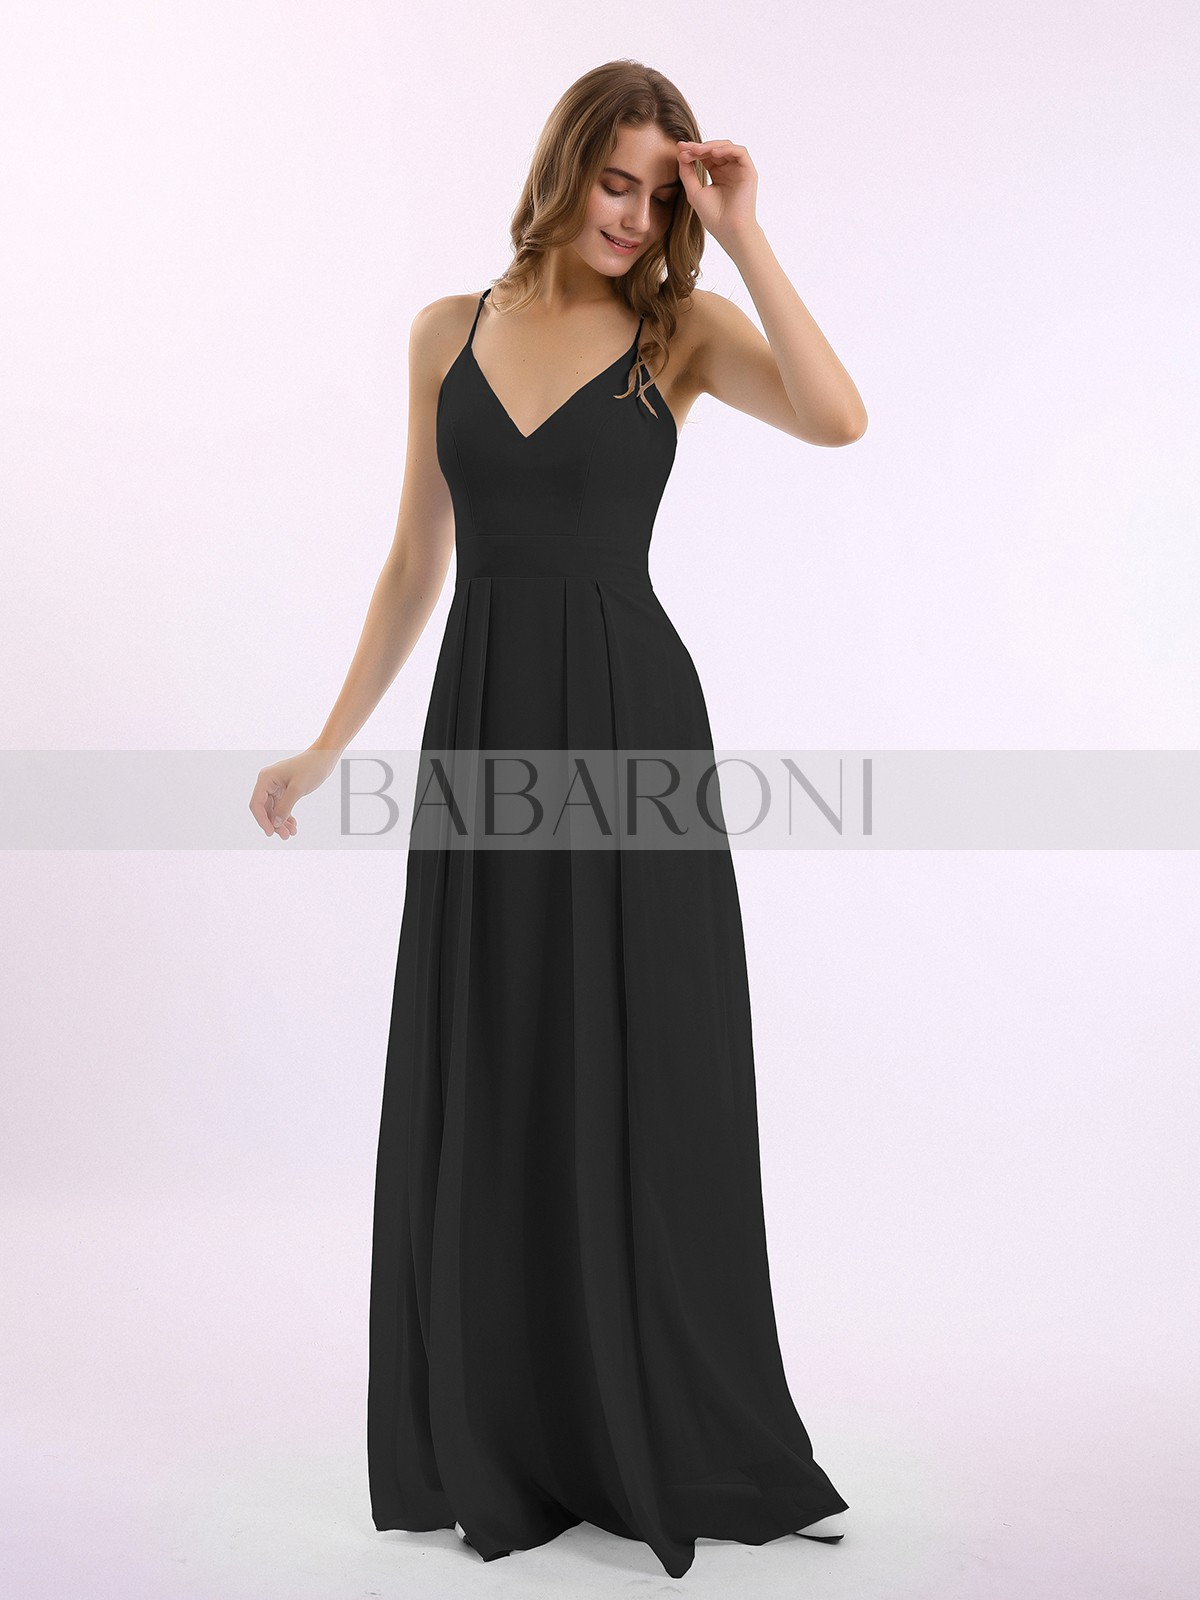 Spaghetti Straps V Neck A Line Chiffon Bridesmaid Dresses Long Formal Party Gowns